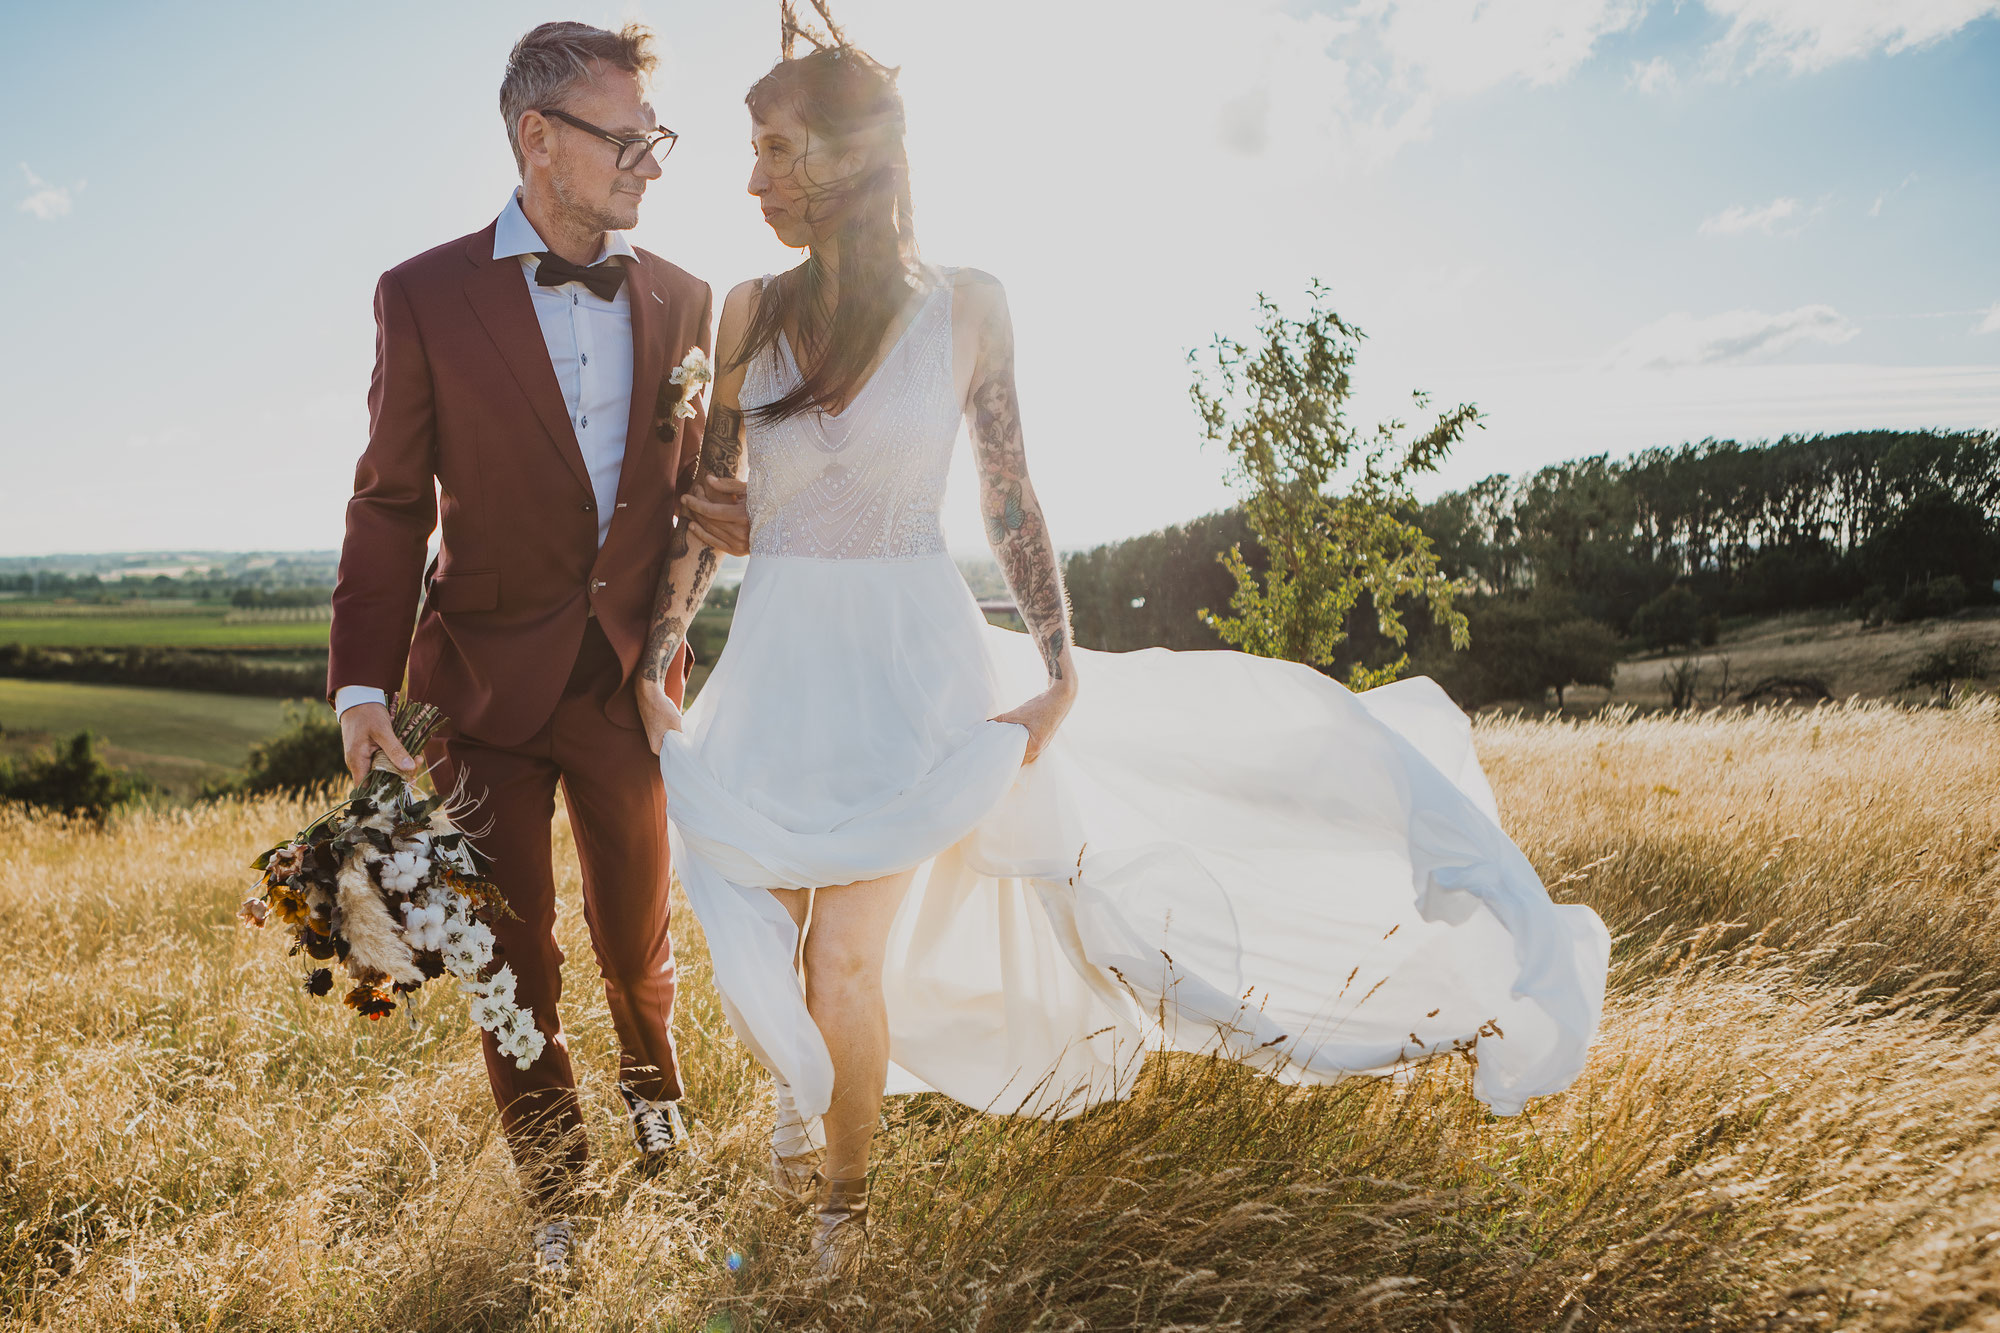 Our styled elopement got published!